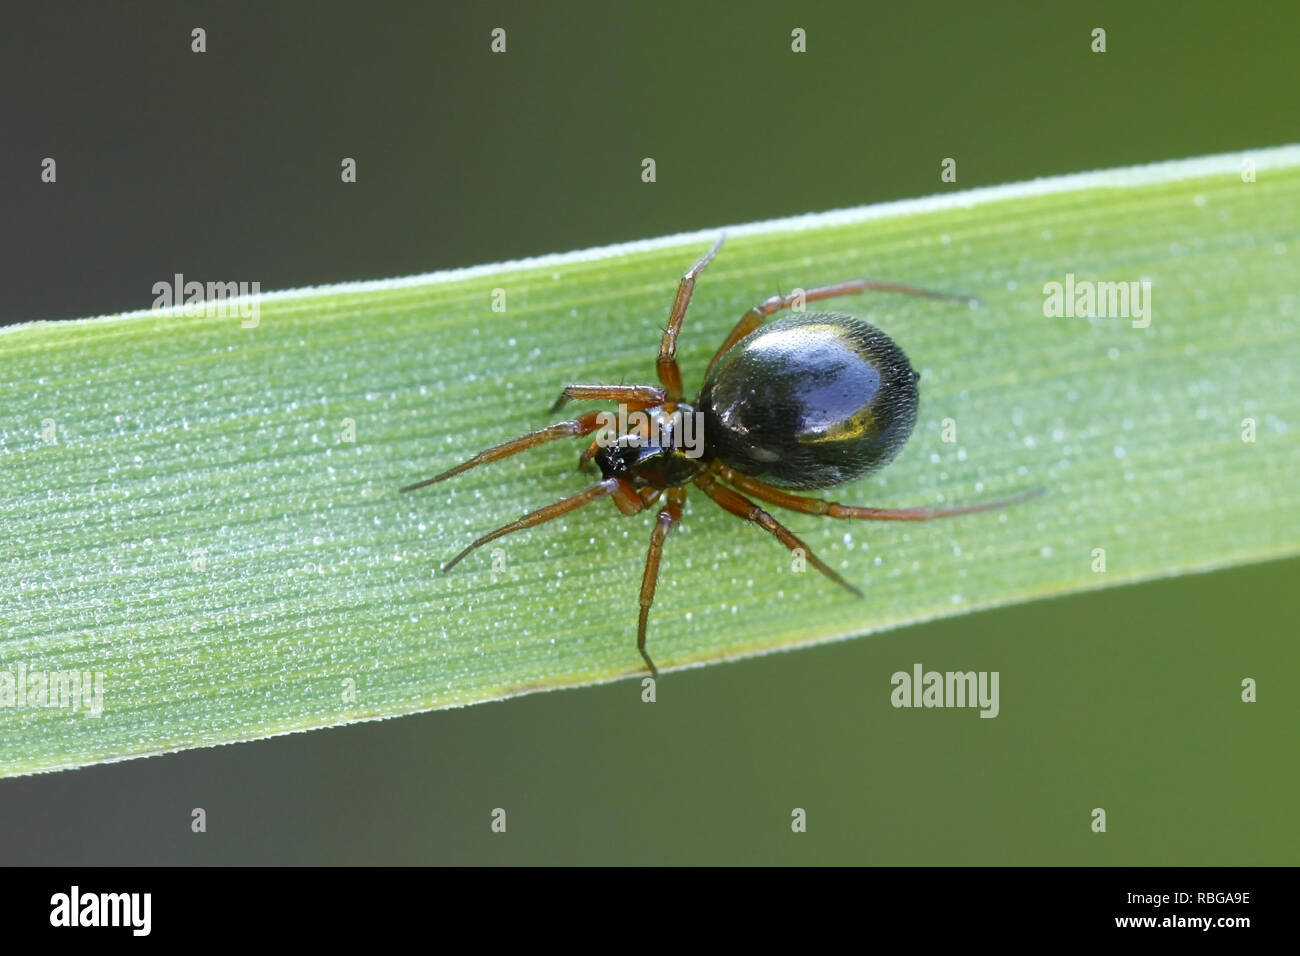 Linyphiidae, commonly called sheet weavers or money spiders - Stock Image